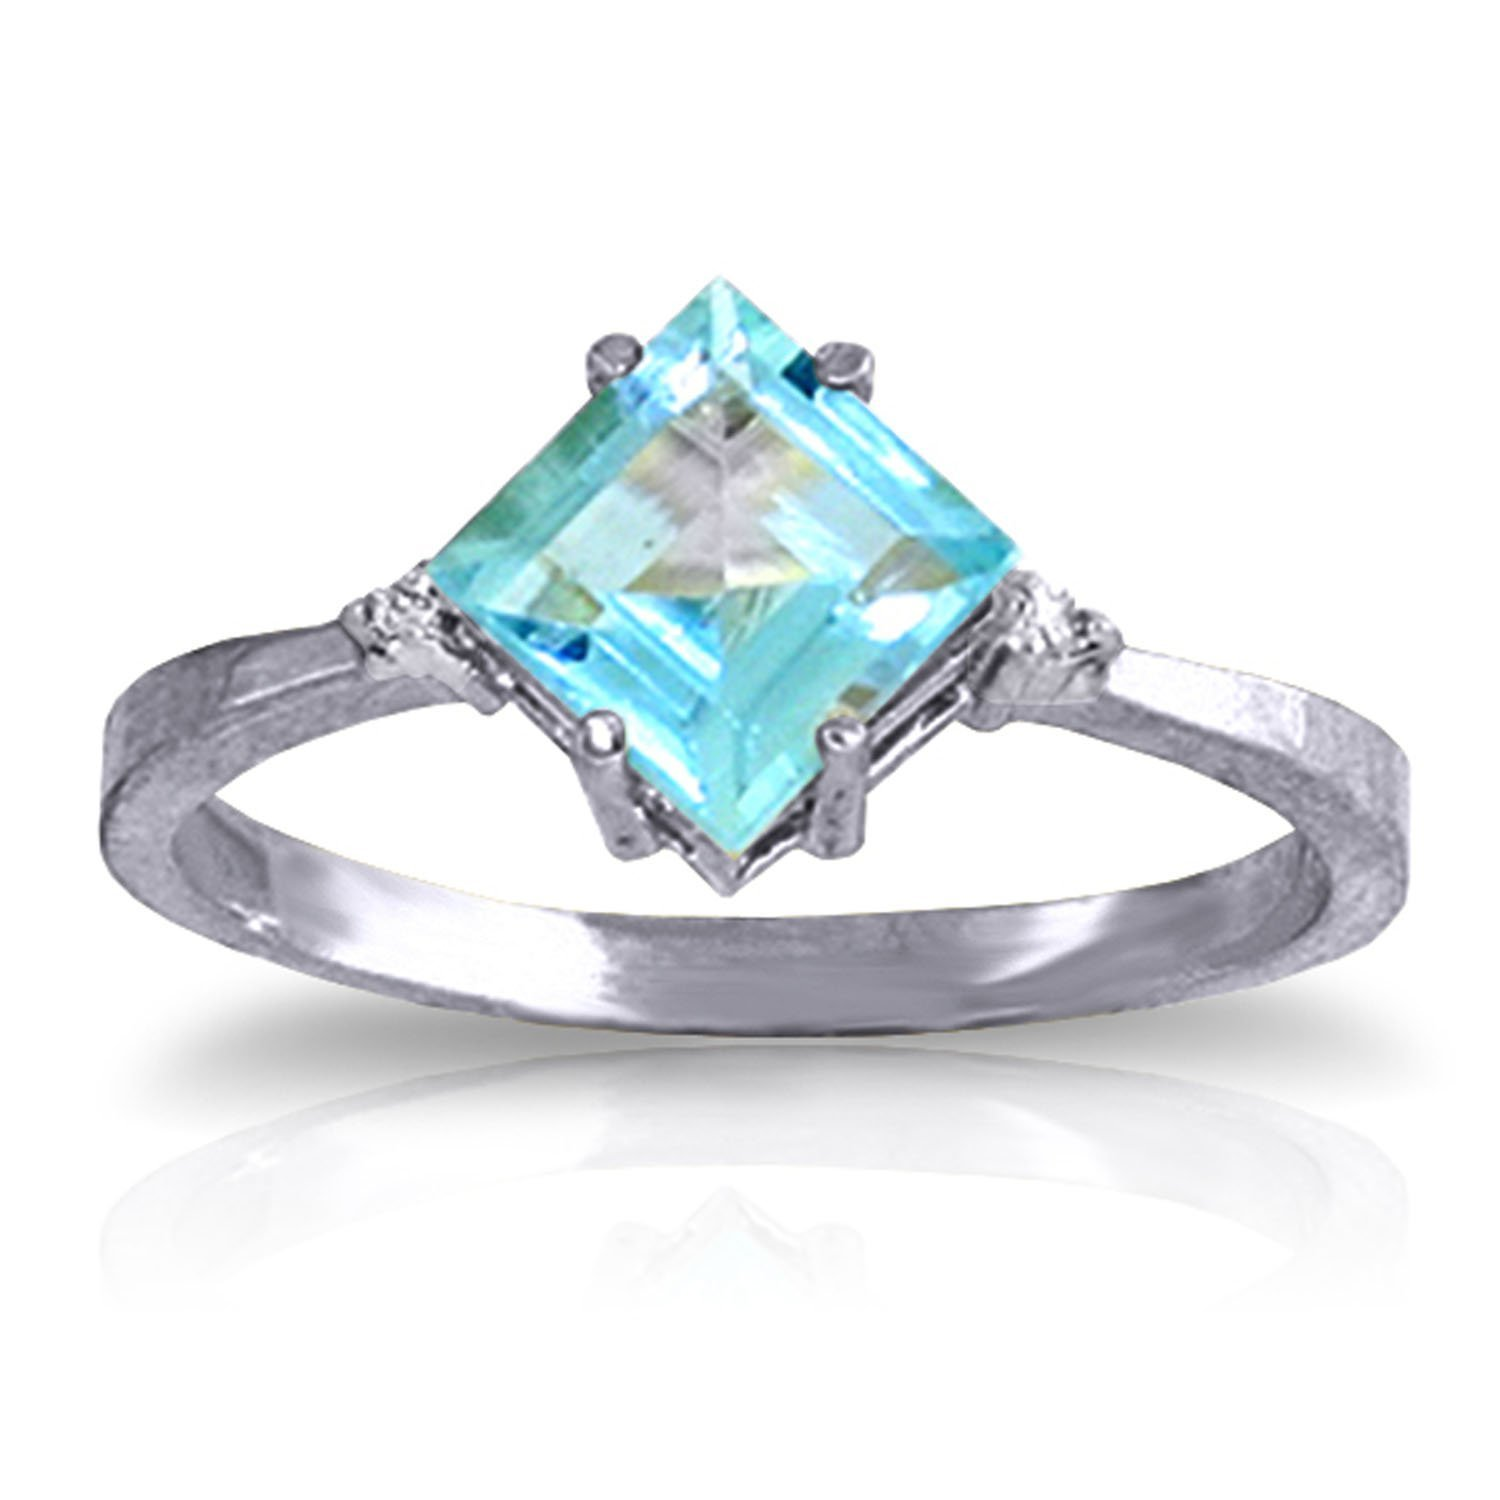 1.77 CTW 14k Solid White Gold Ring with Natural Diamonds and Blue Topaz - Size 10